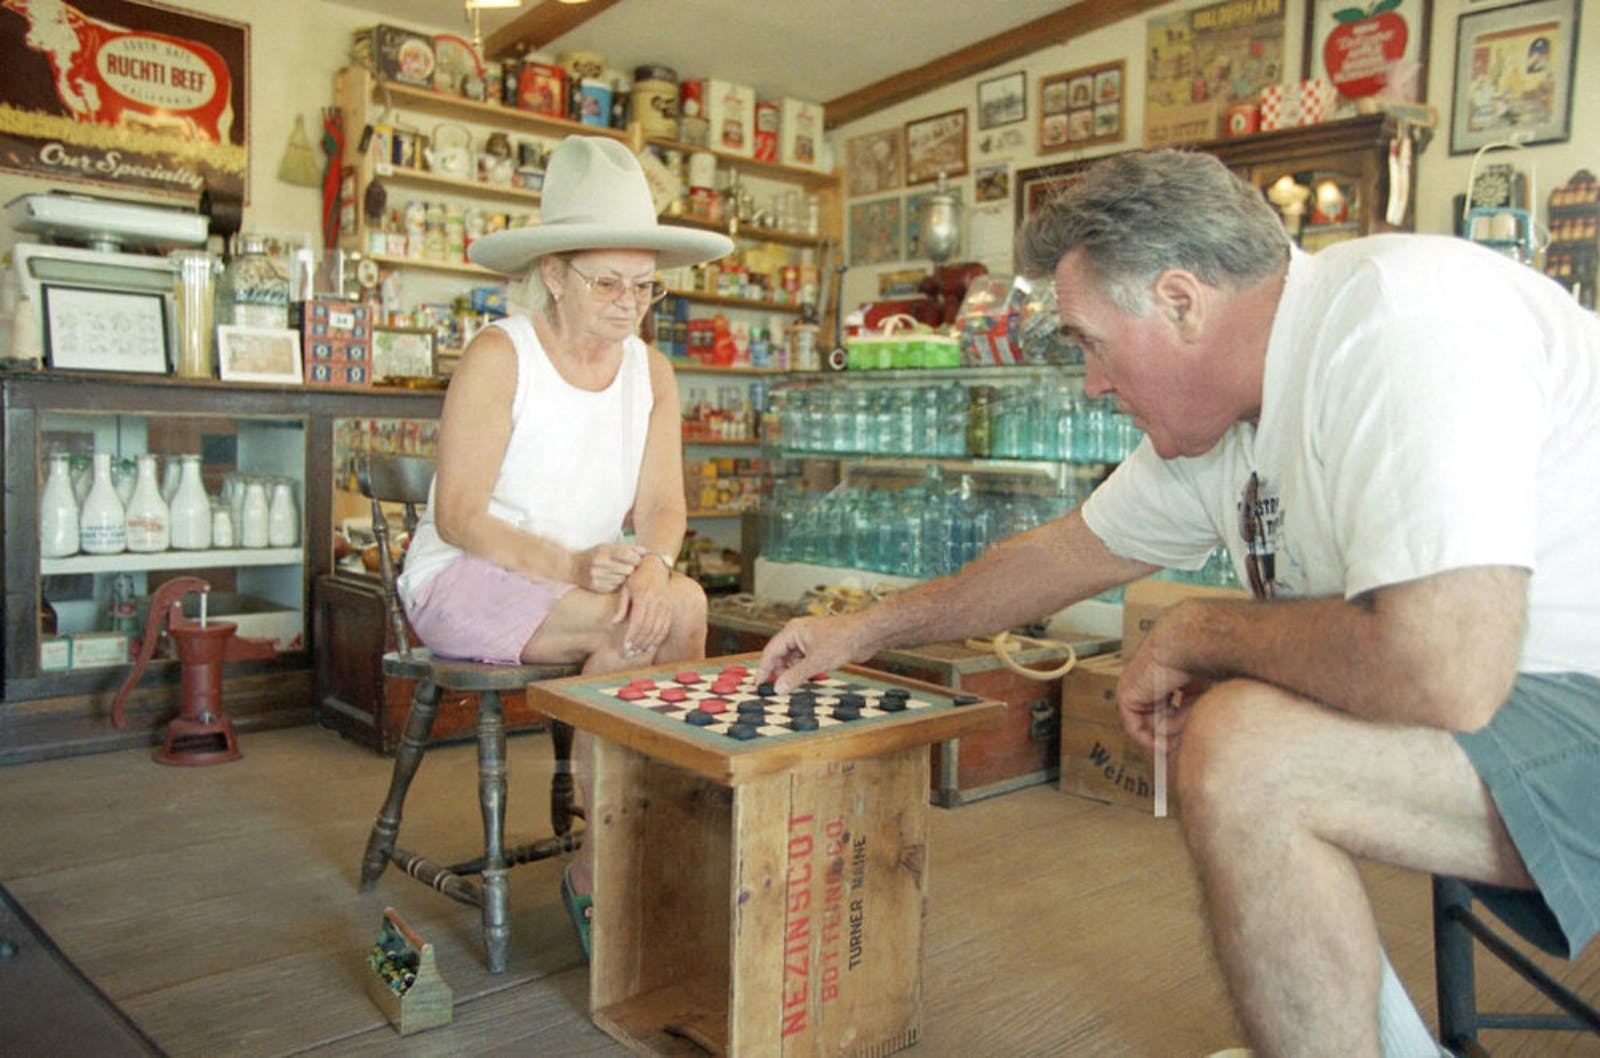 Monika Legrone plays John Rosemeyer in a game of checkers